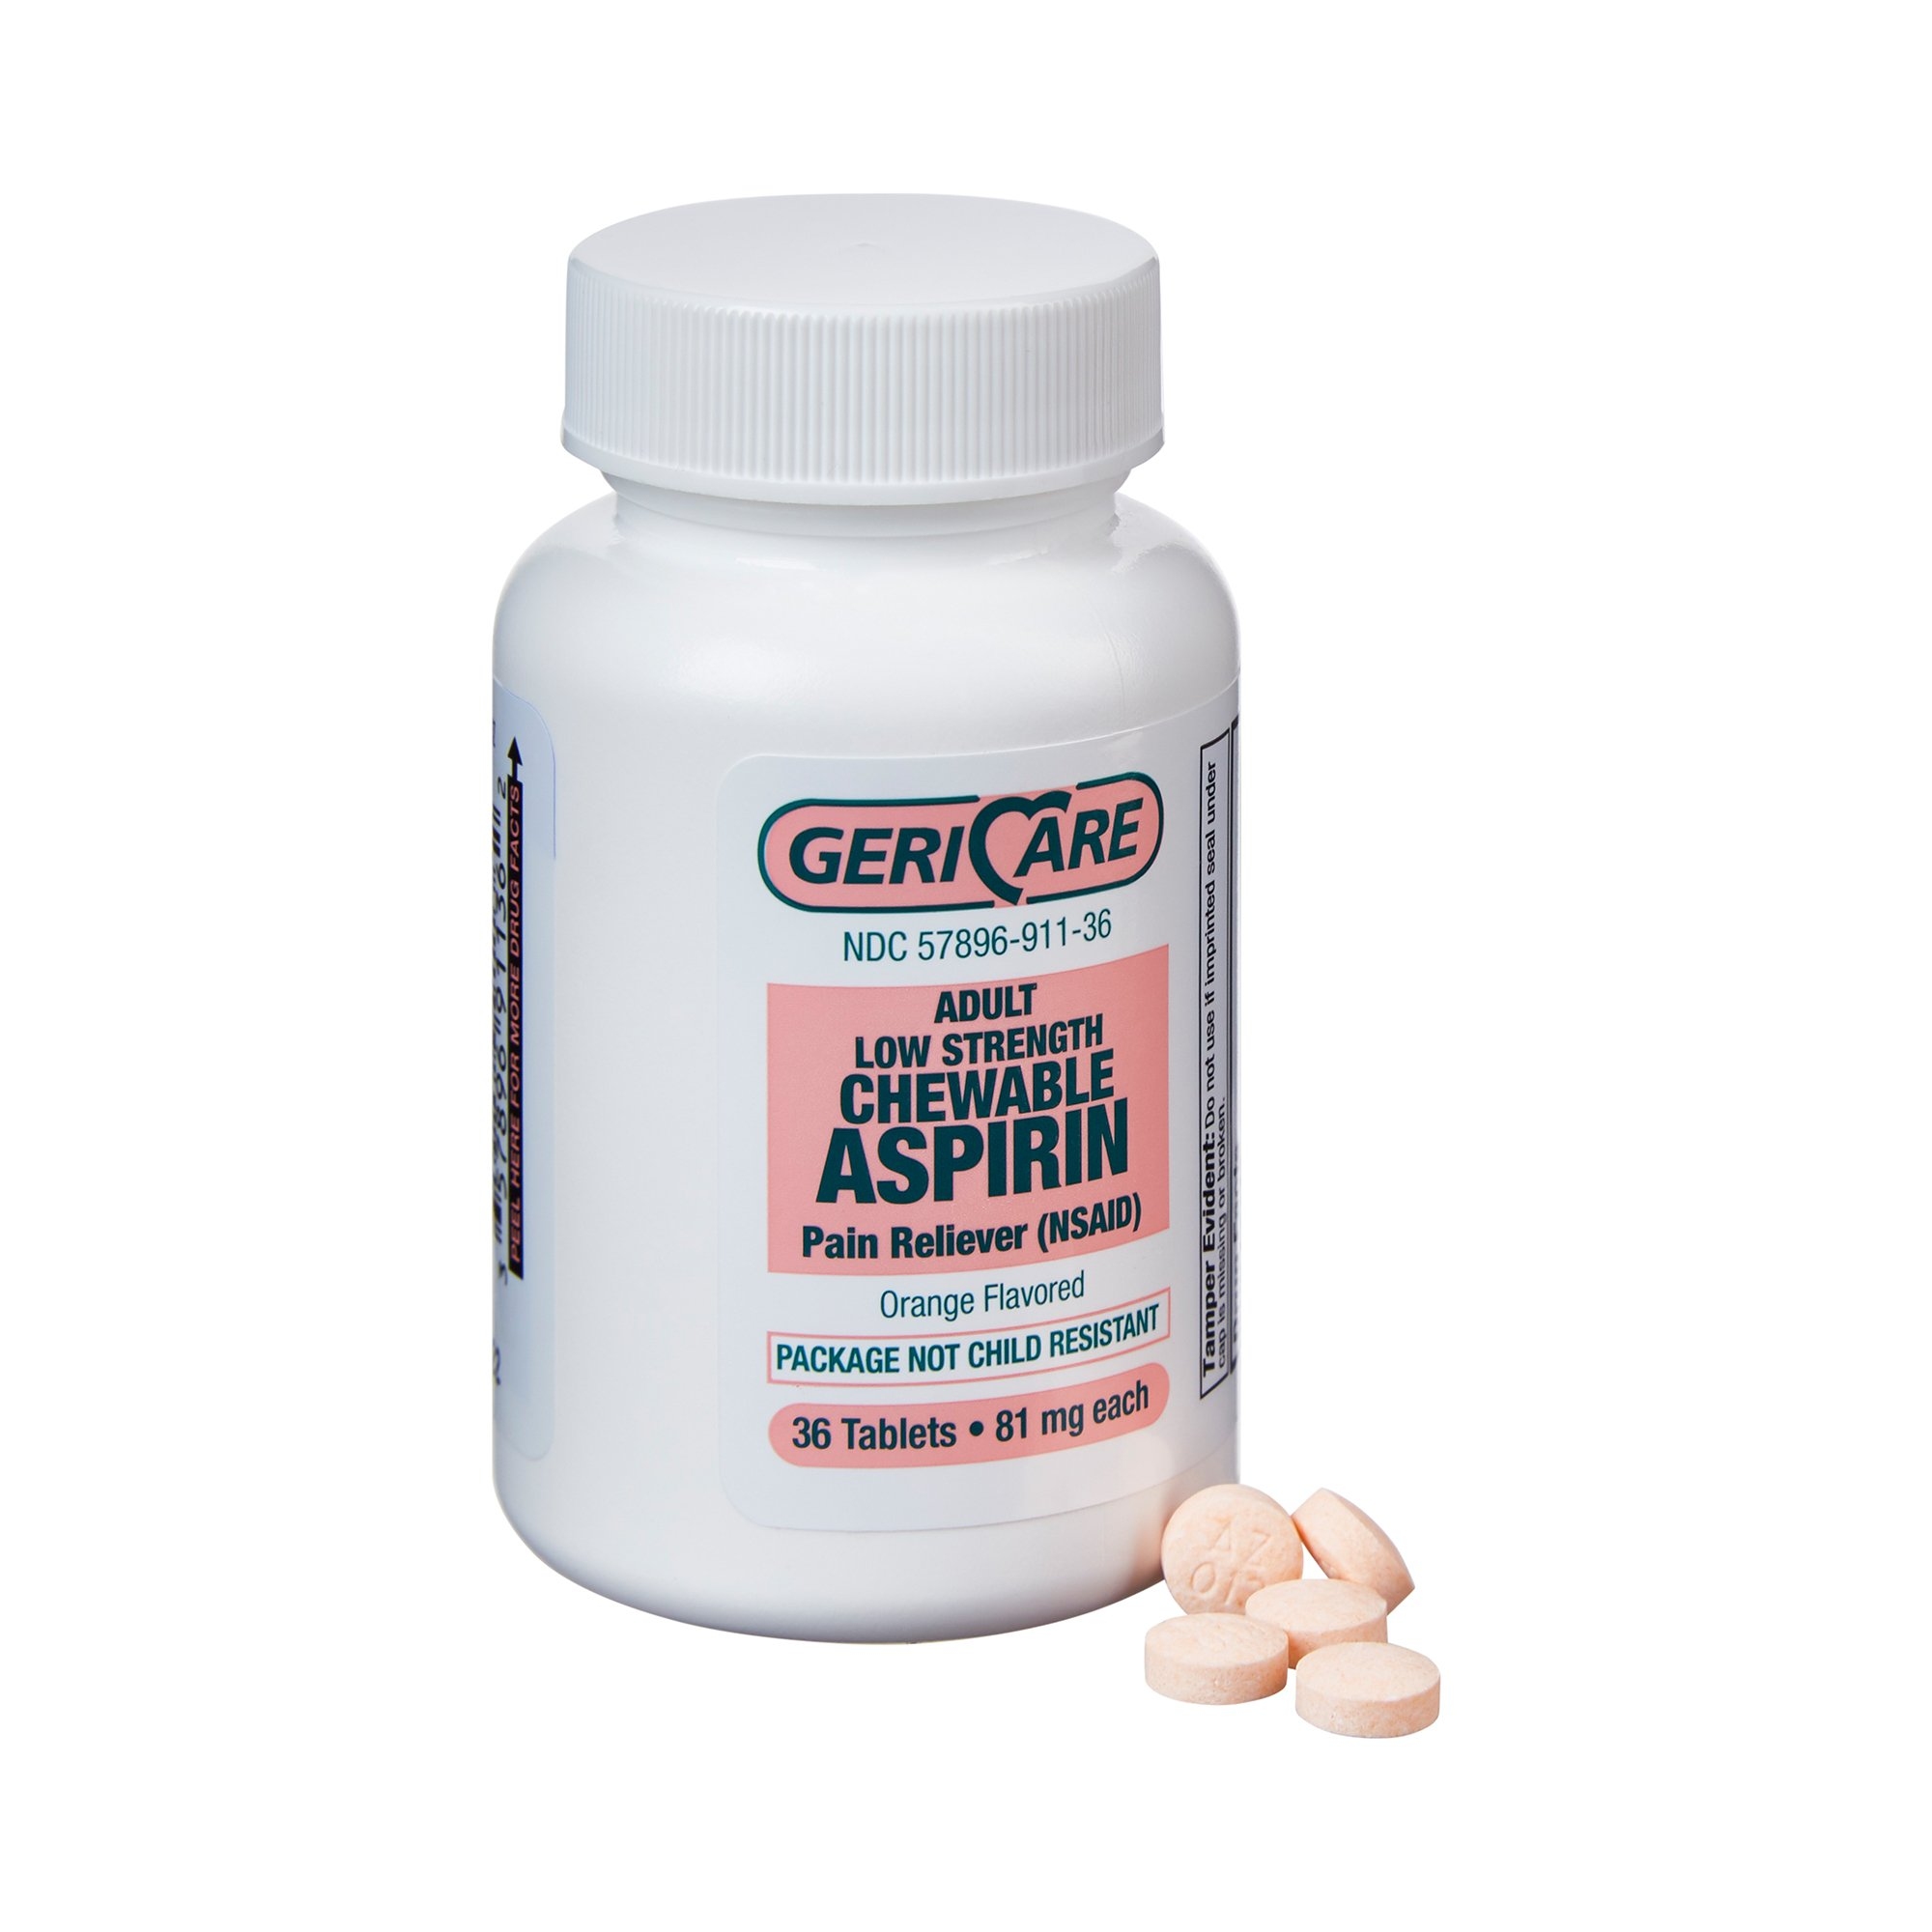 Geri-Care Adult Low Strength Chewable Aspirin Pain Reliever, 81 mg., 911-36-GCP, 1 Each